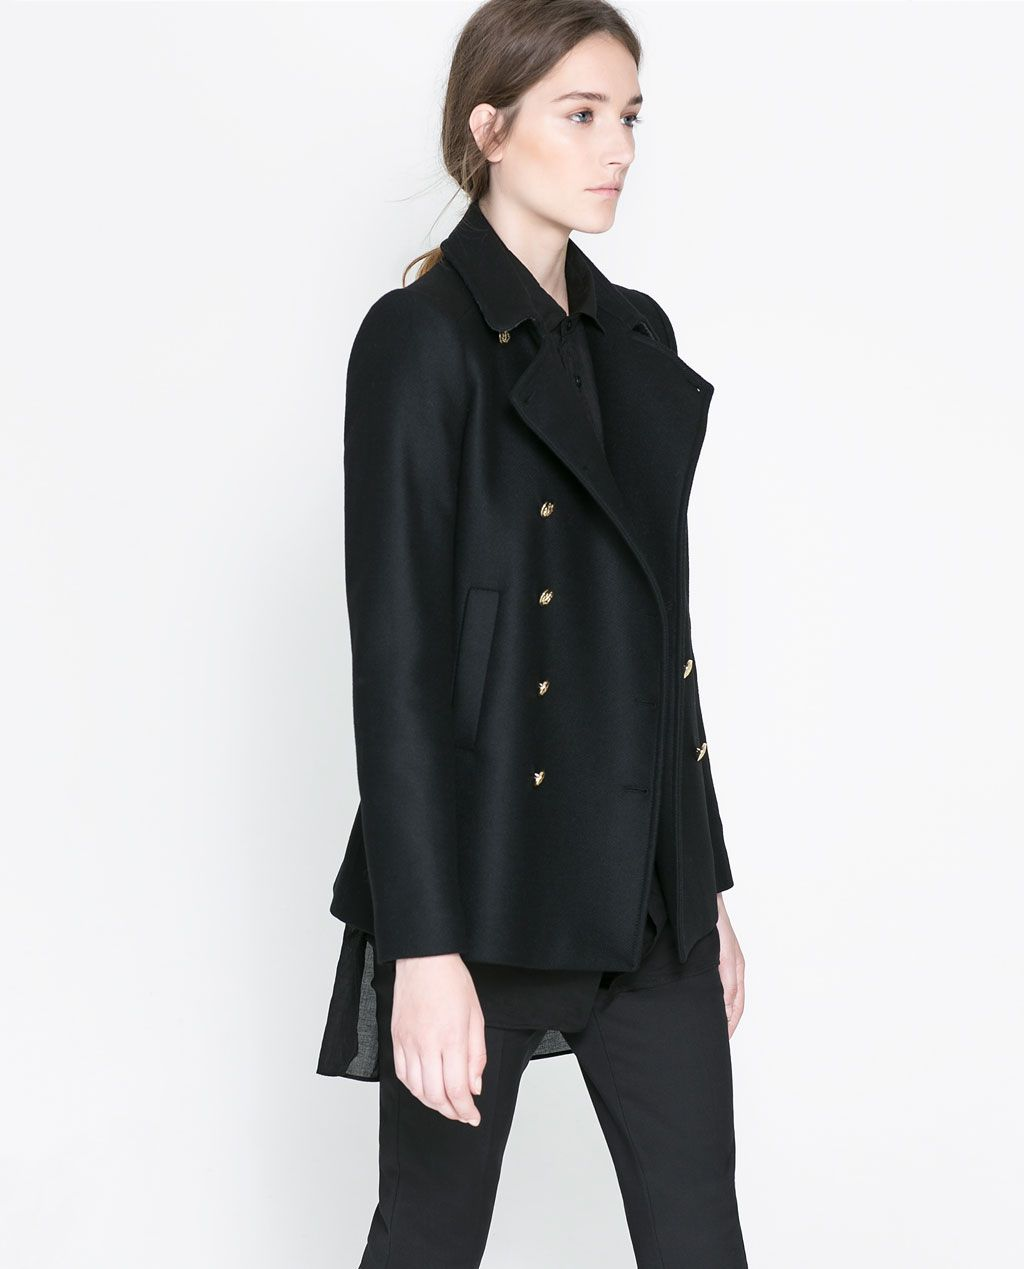 ZARA - WOMAN - SHORT COAT WITH METALLIC BUTTONS